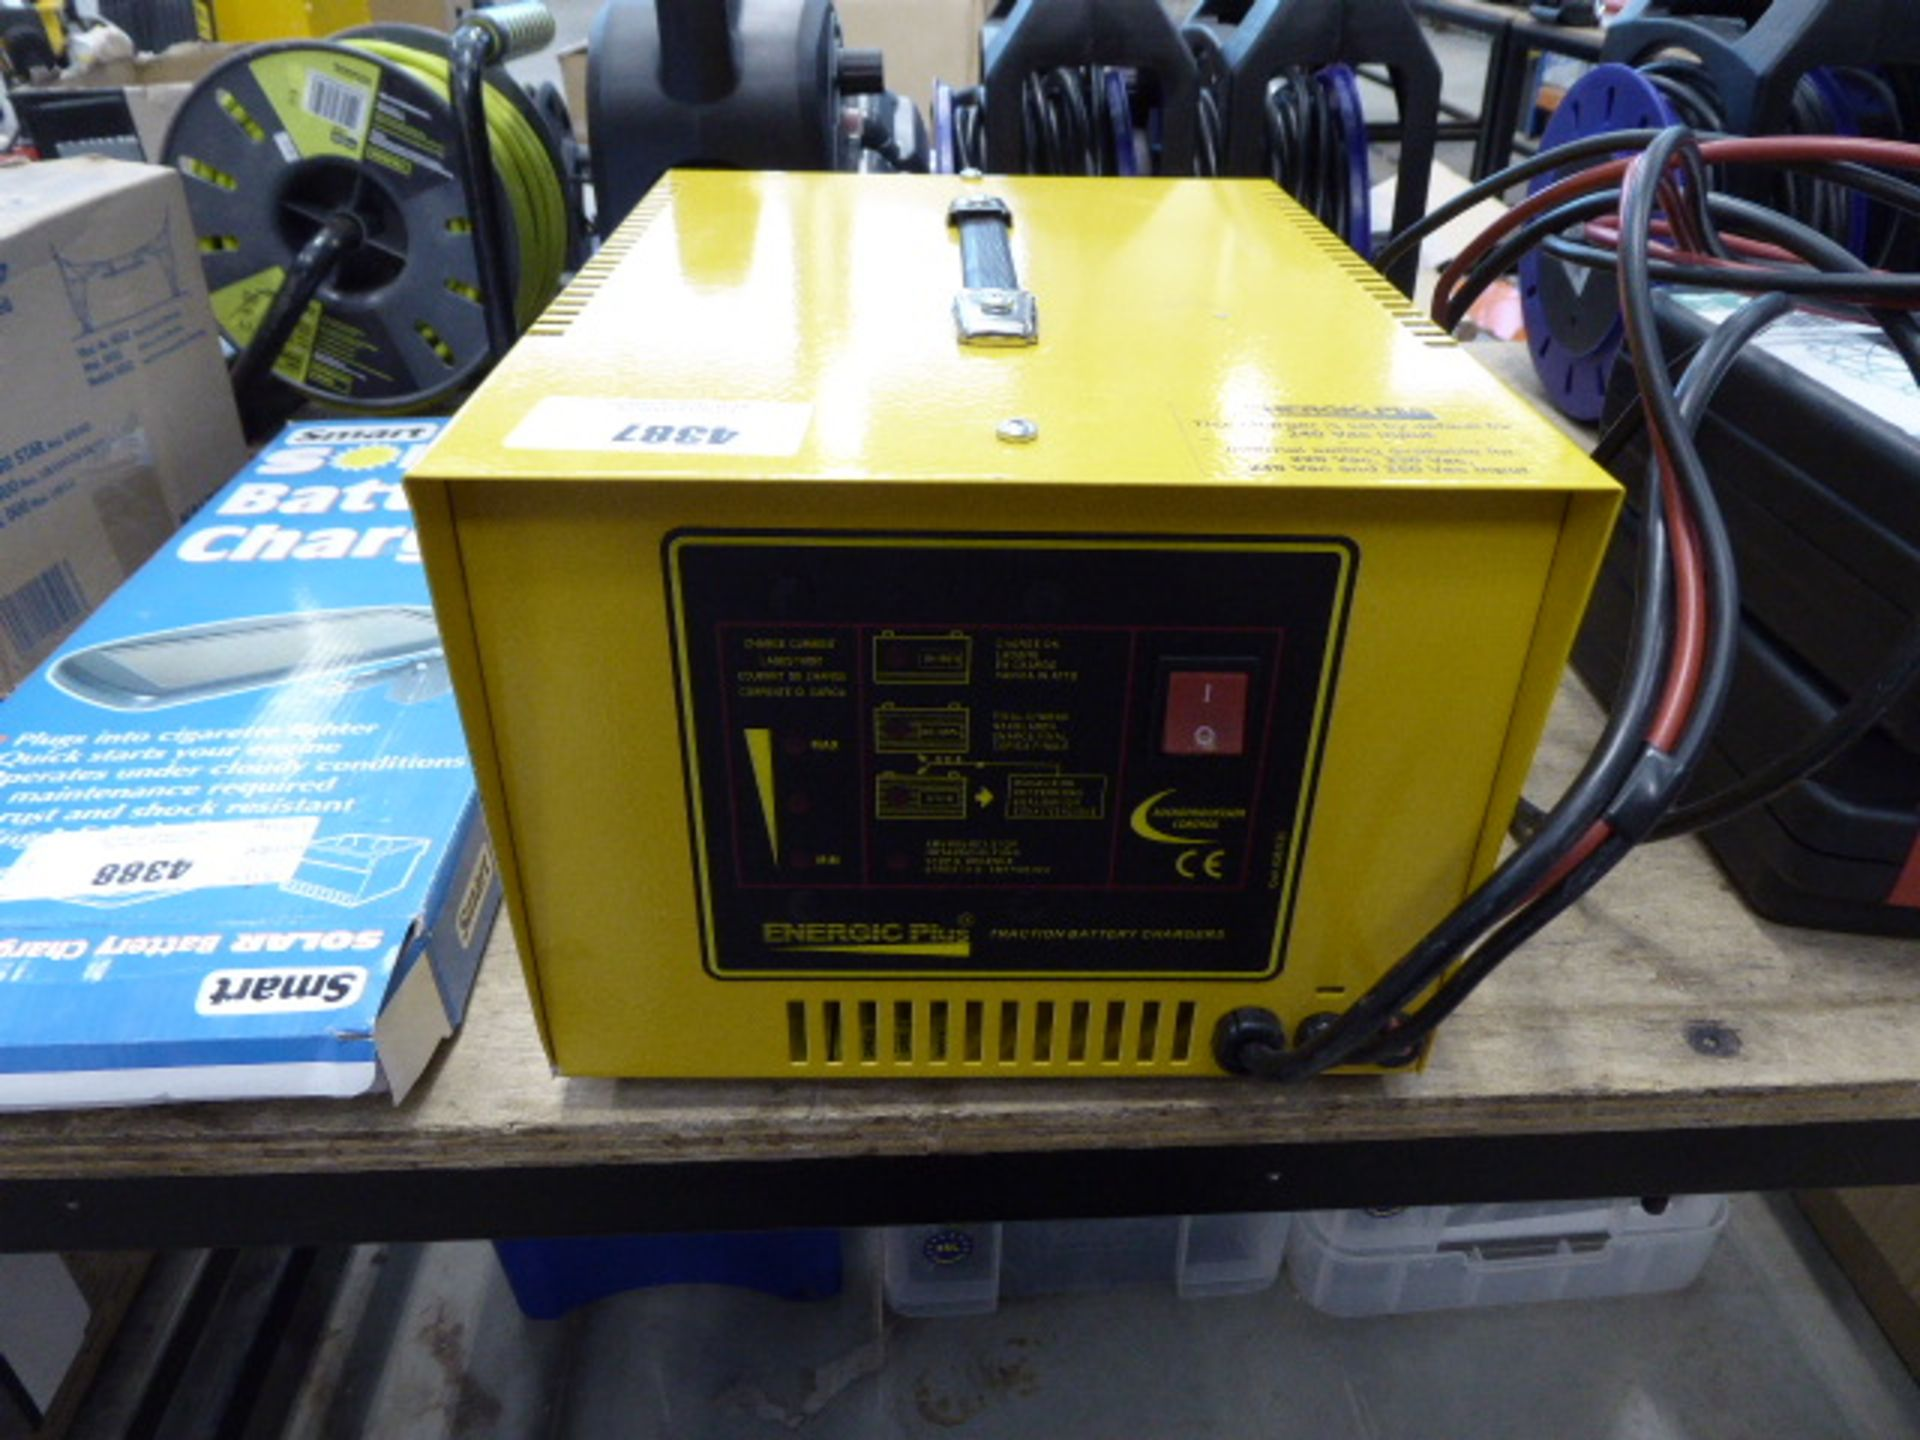 Energic Plus traction battery charger